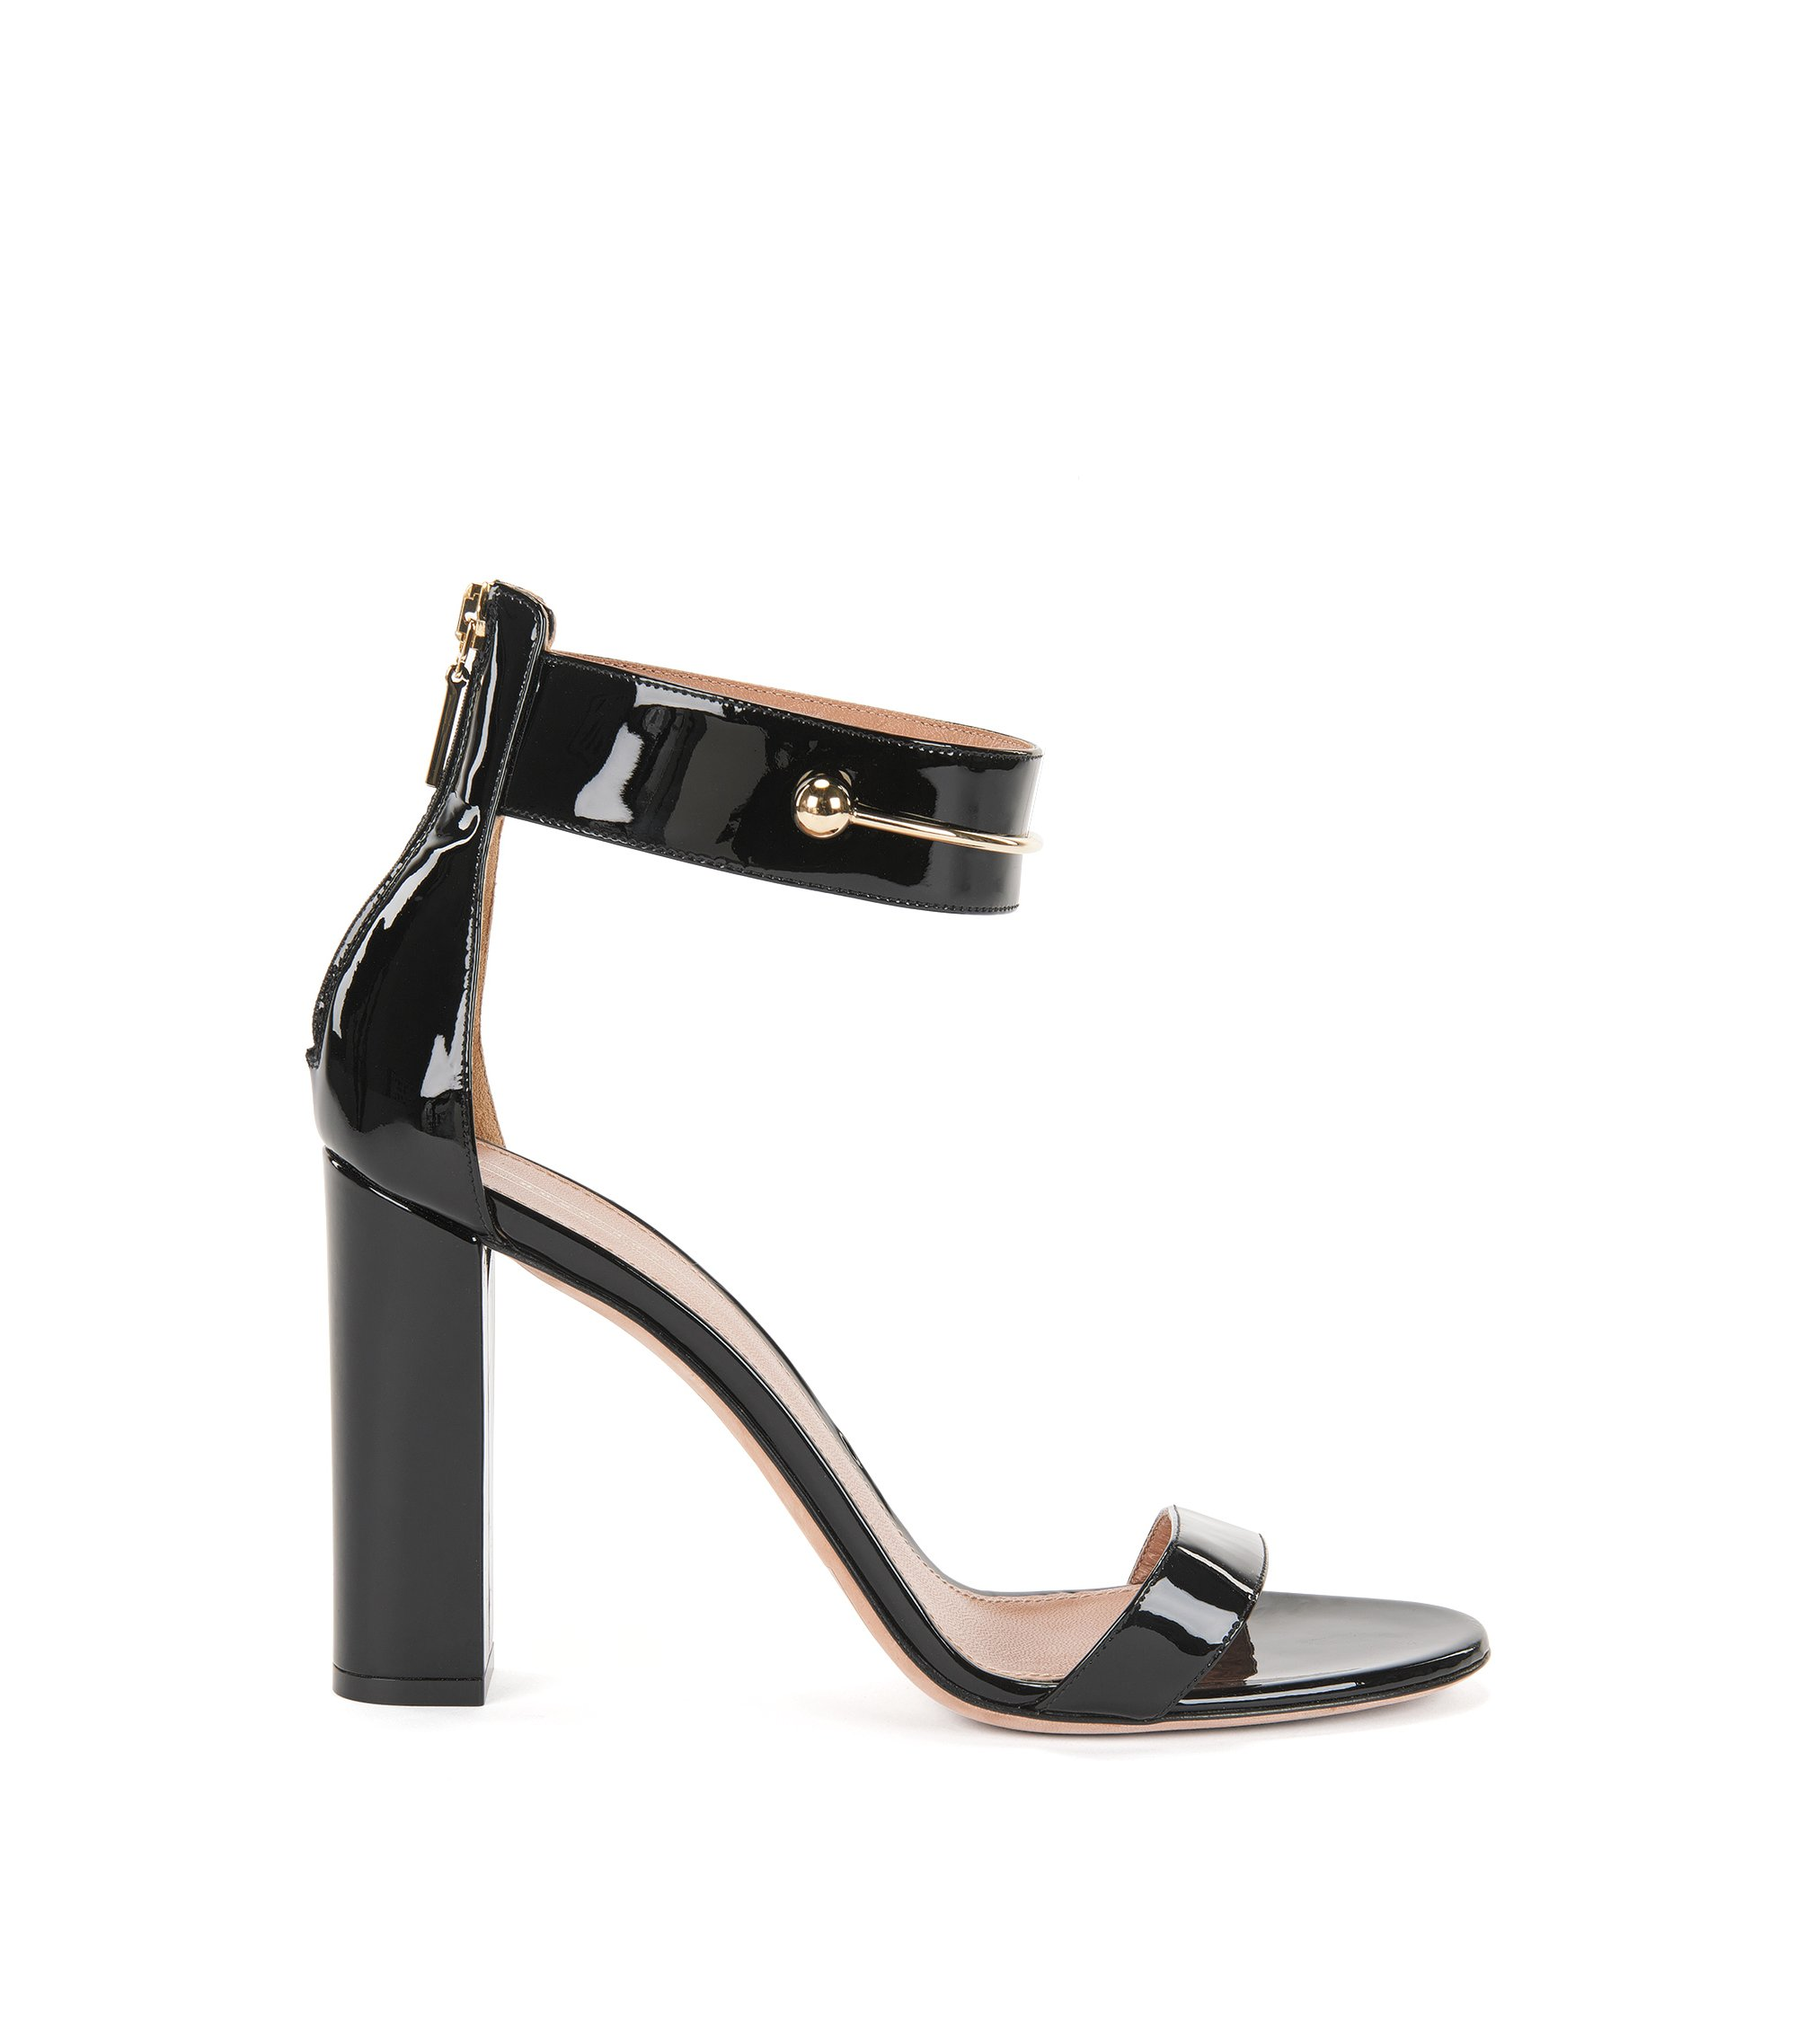 Patent Leather Sandal | Lily Sandal, Black